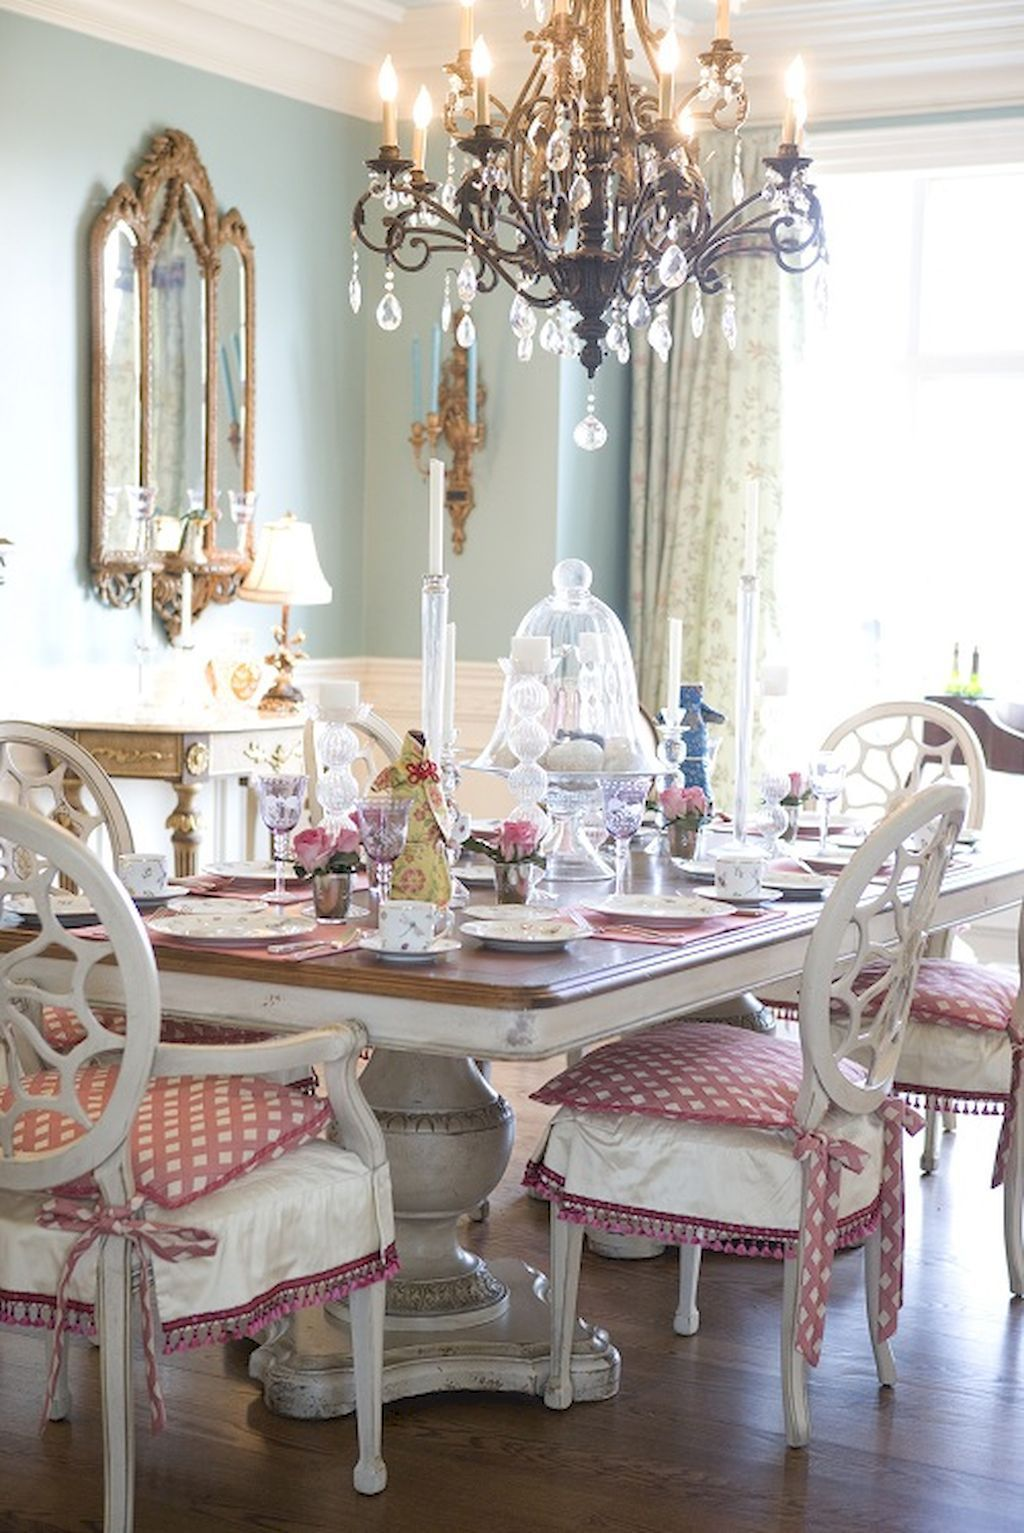 Vintage French Country Dining Room Design Ideas 54  French Endearing Country French Dining Room Set Decorating Inspiration